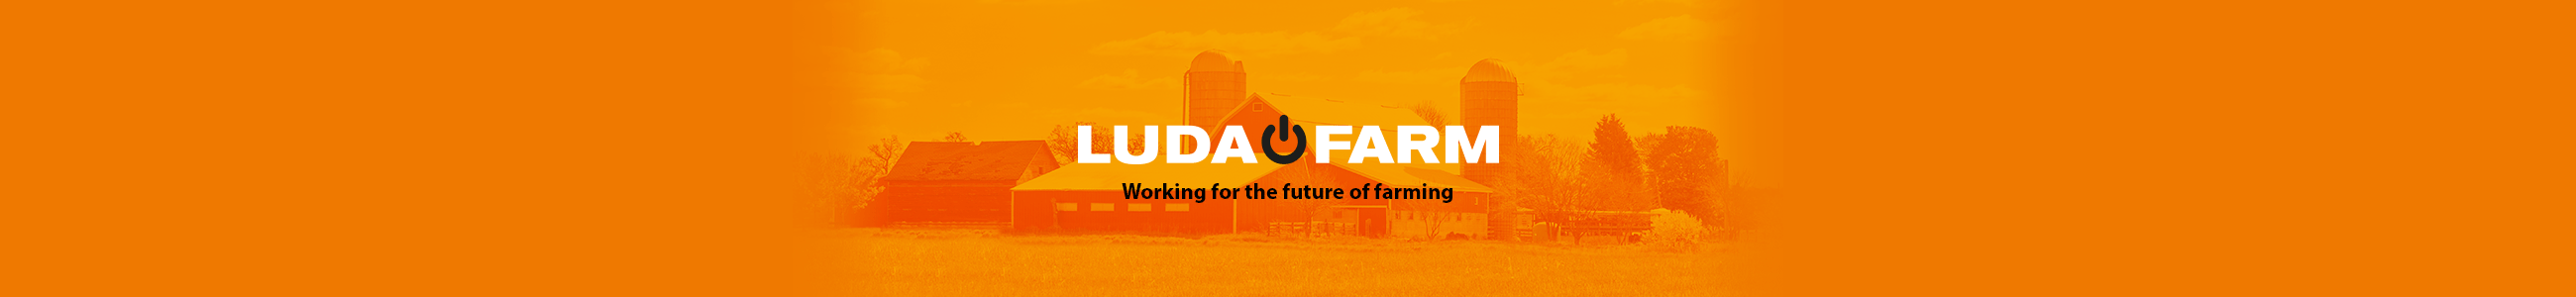 Luda.farm´illustration Web banner large